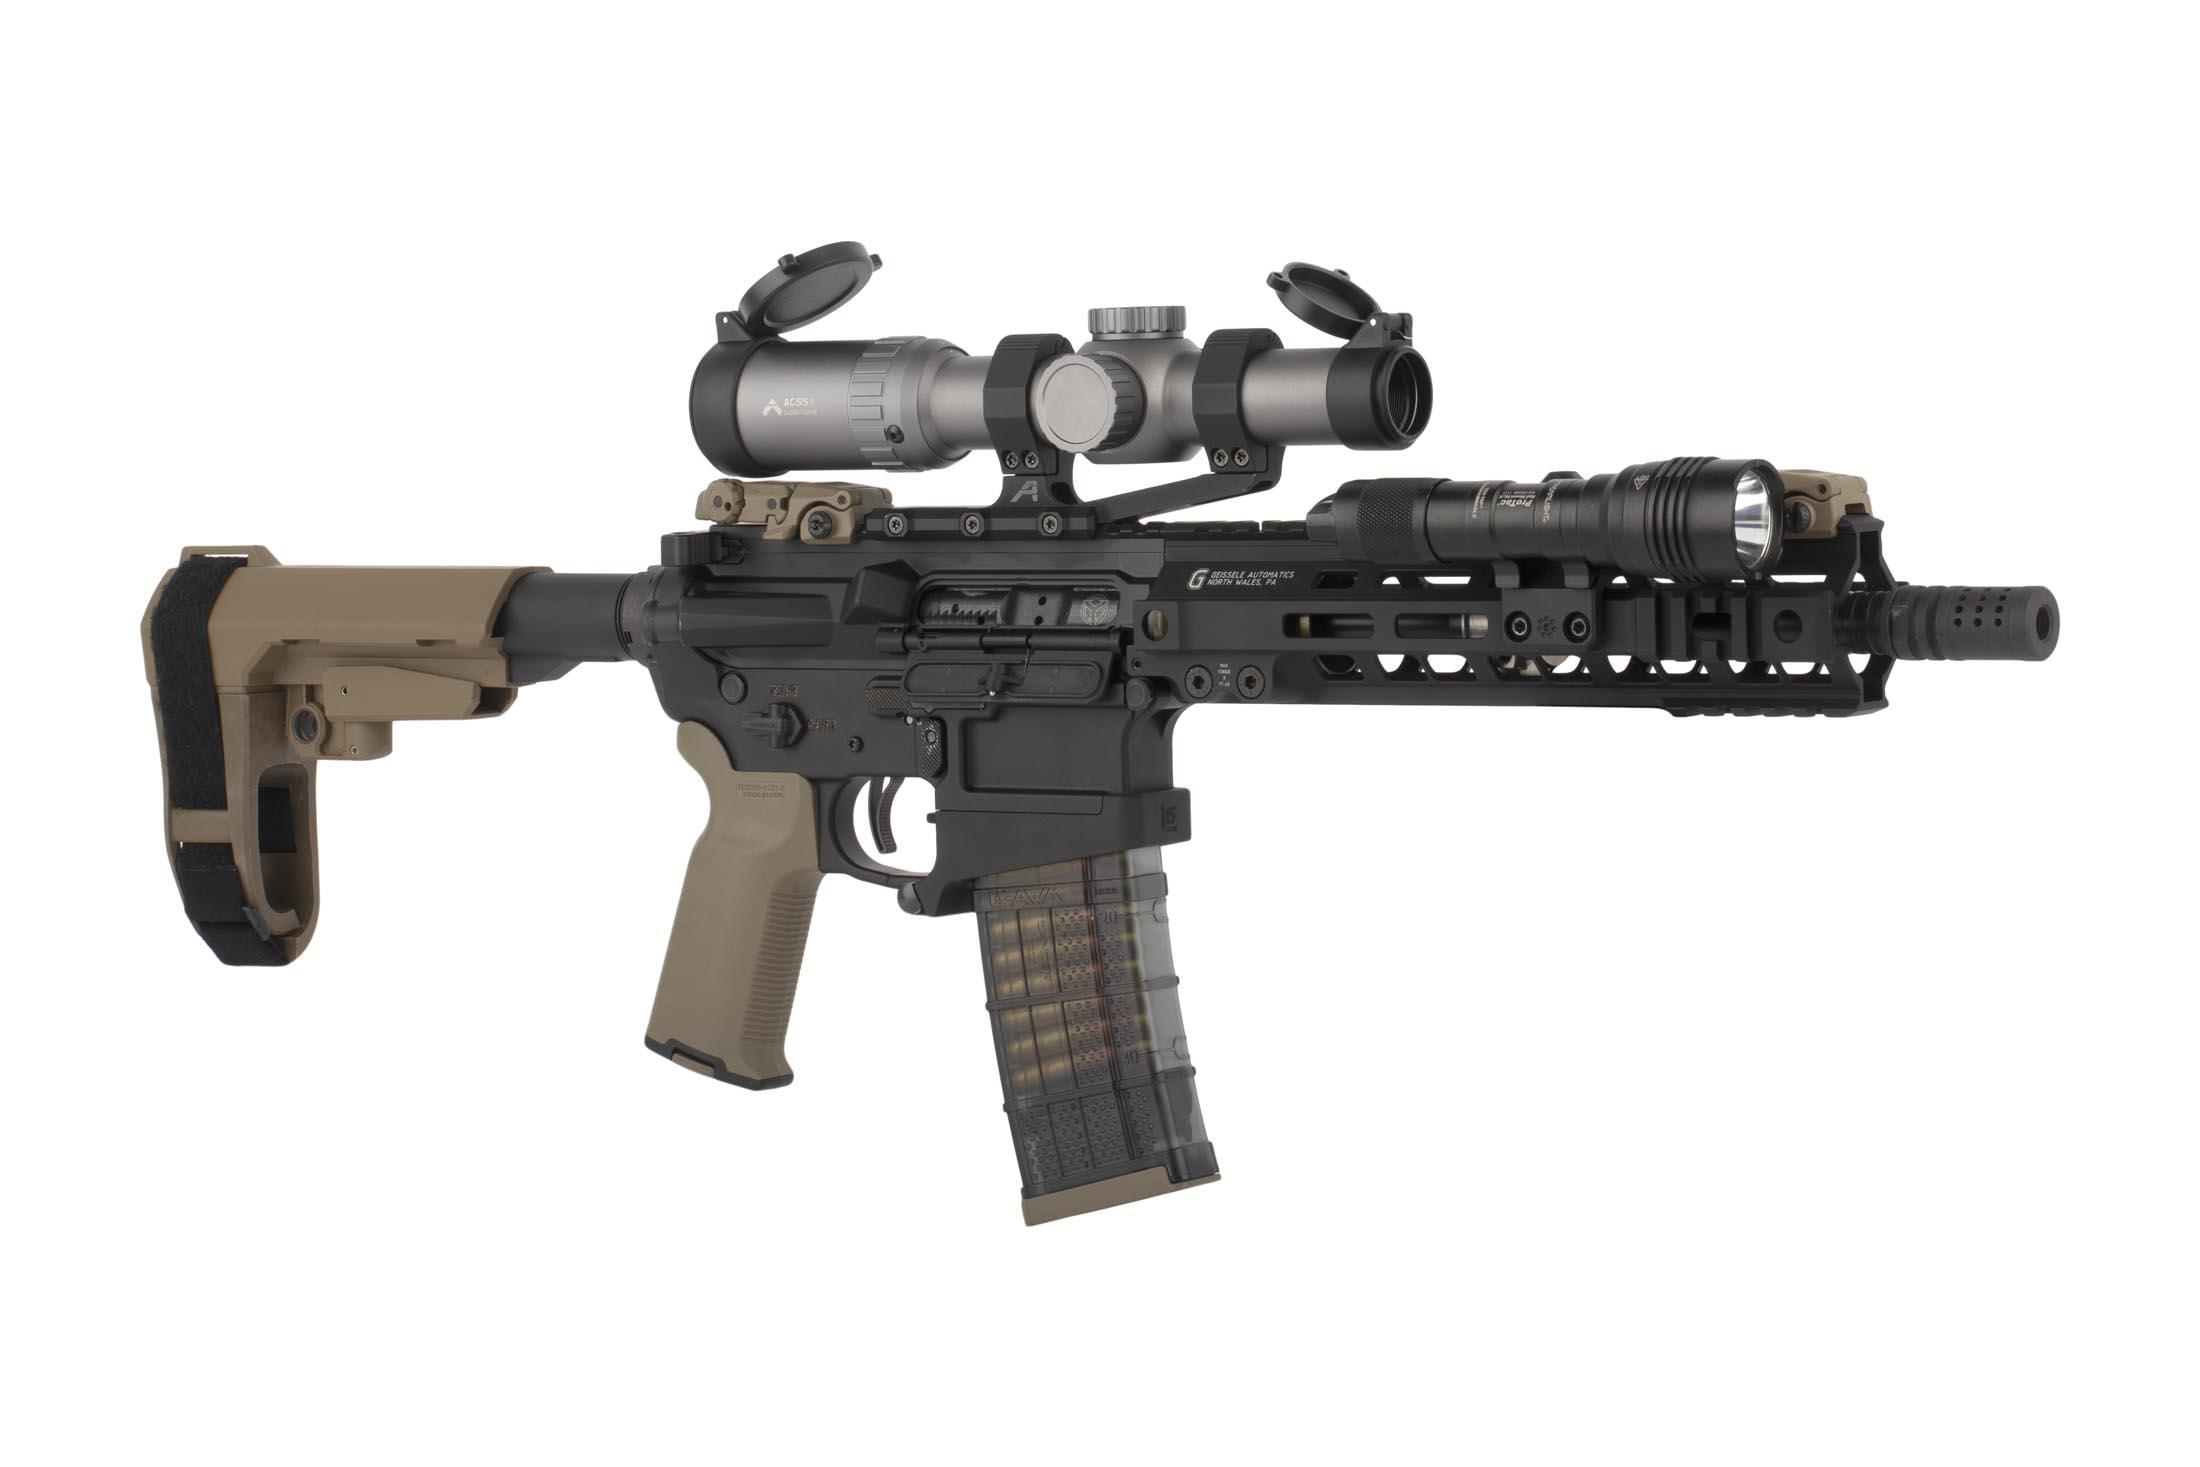 Primary Arms 1-6X24mm SFP Rifle Scope GEN III - Illuminated ACSS 300BLK / 7.62X39 Reticle - Wolf Grey